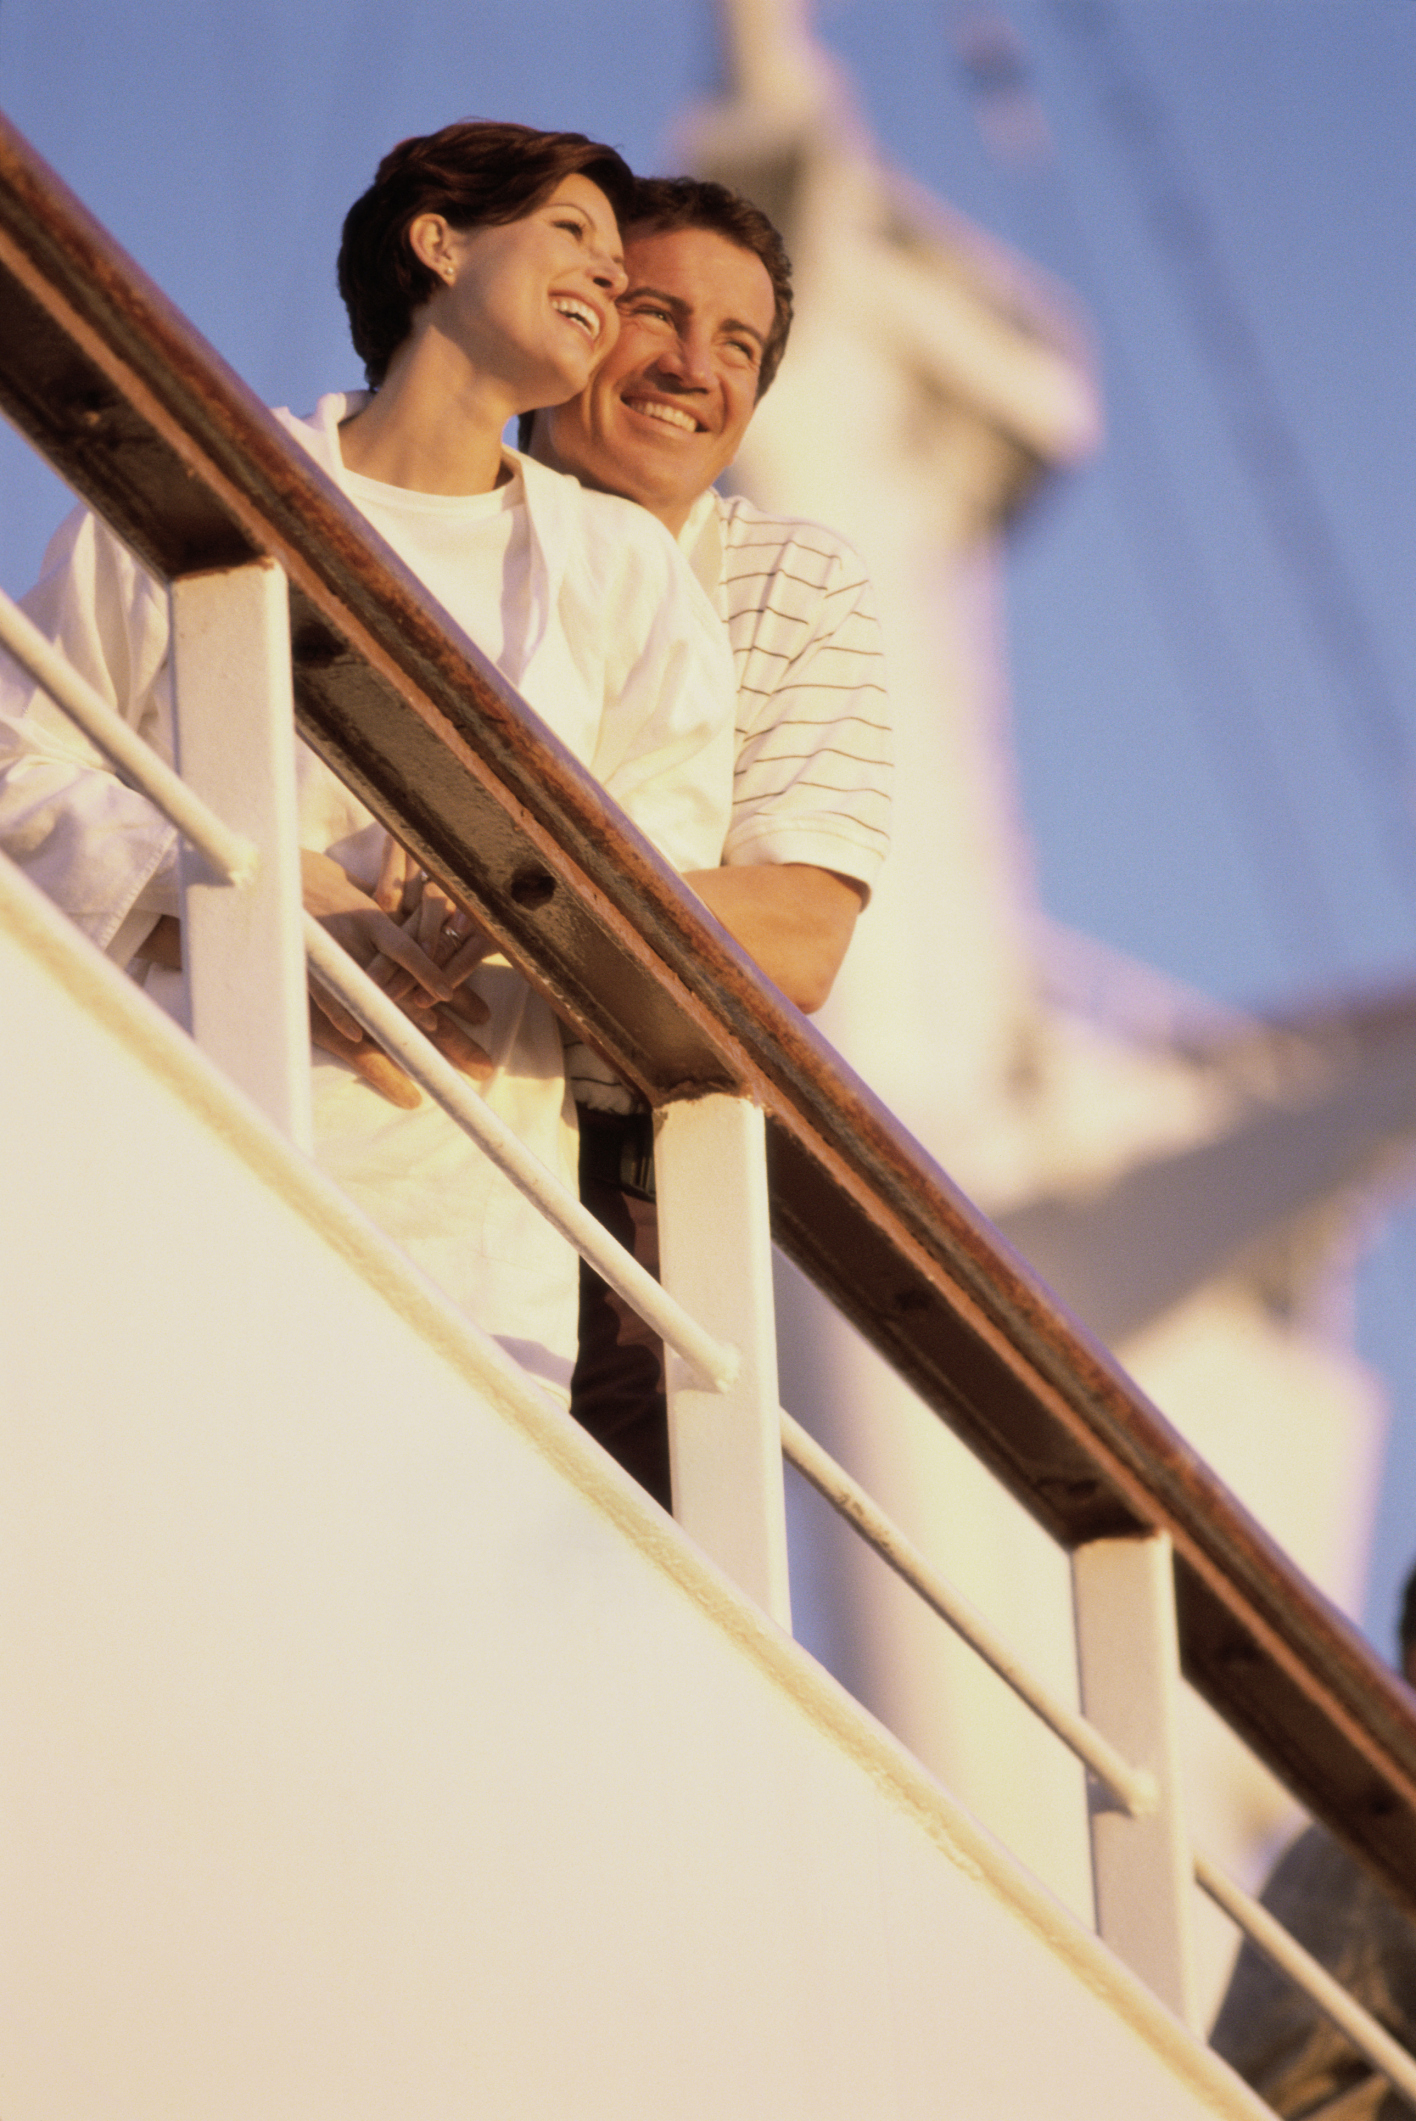 Day Cruises From NYC Getaway USA - 3 day cruises from baltimore